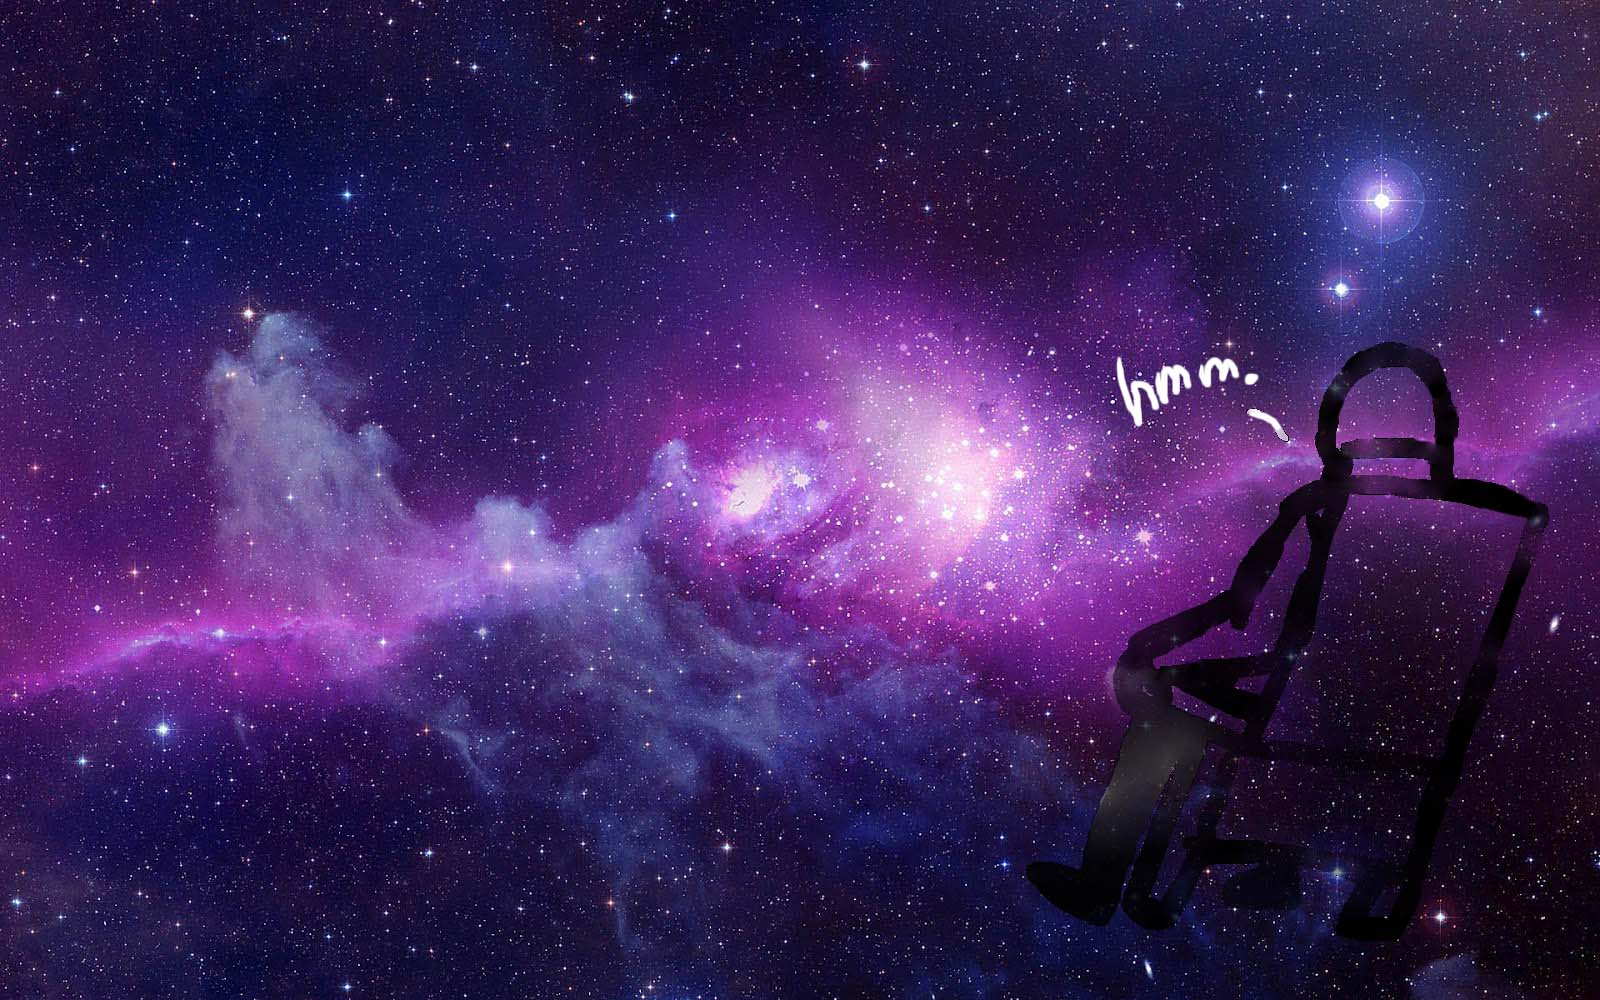 Guy on Chair thavel in Space